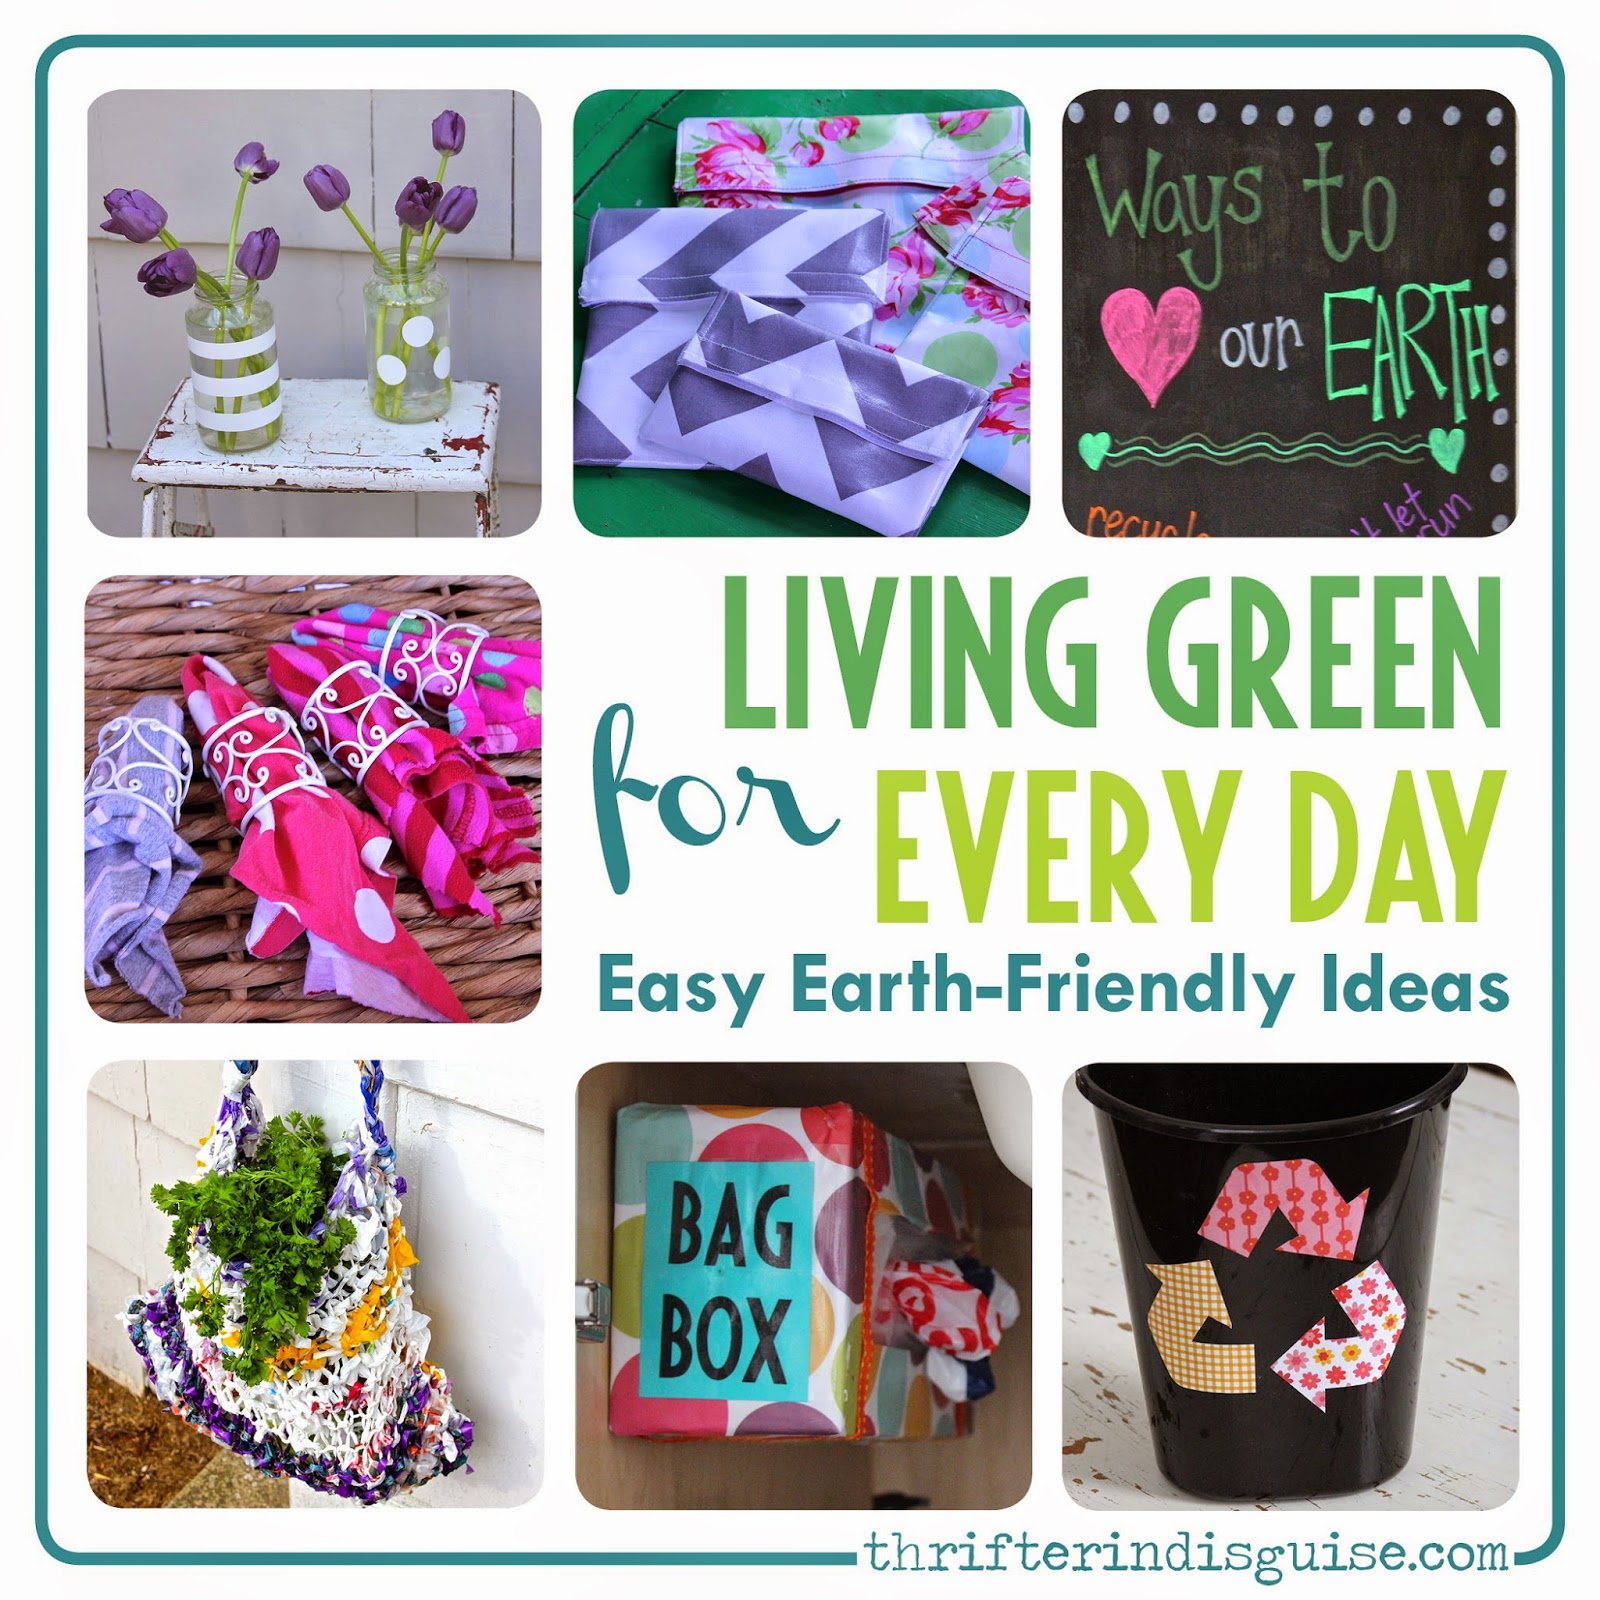 Eco-Friendly Ideas for Families